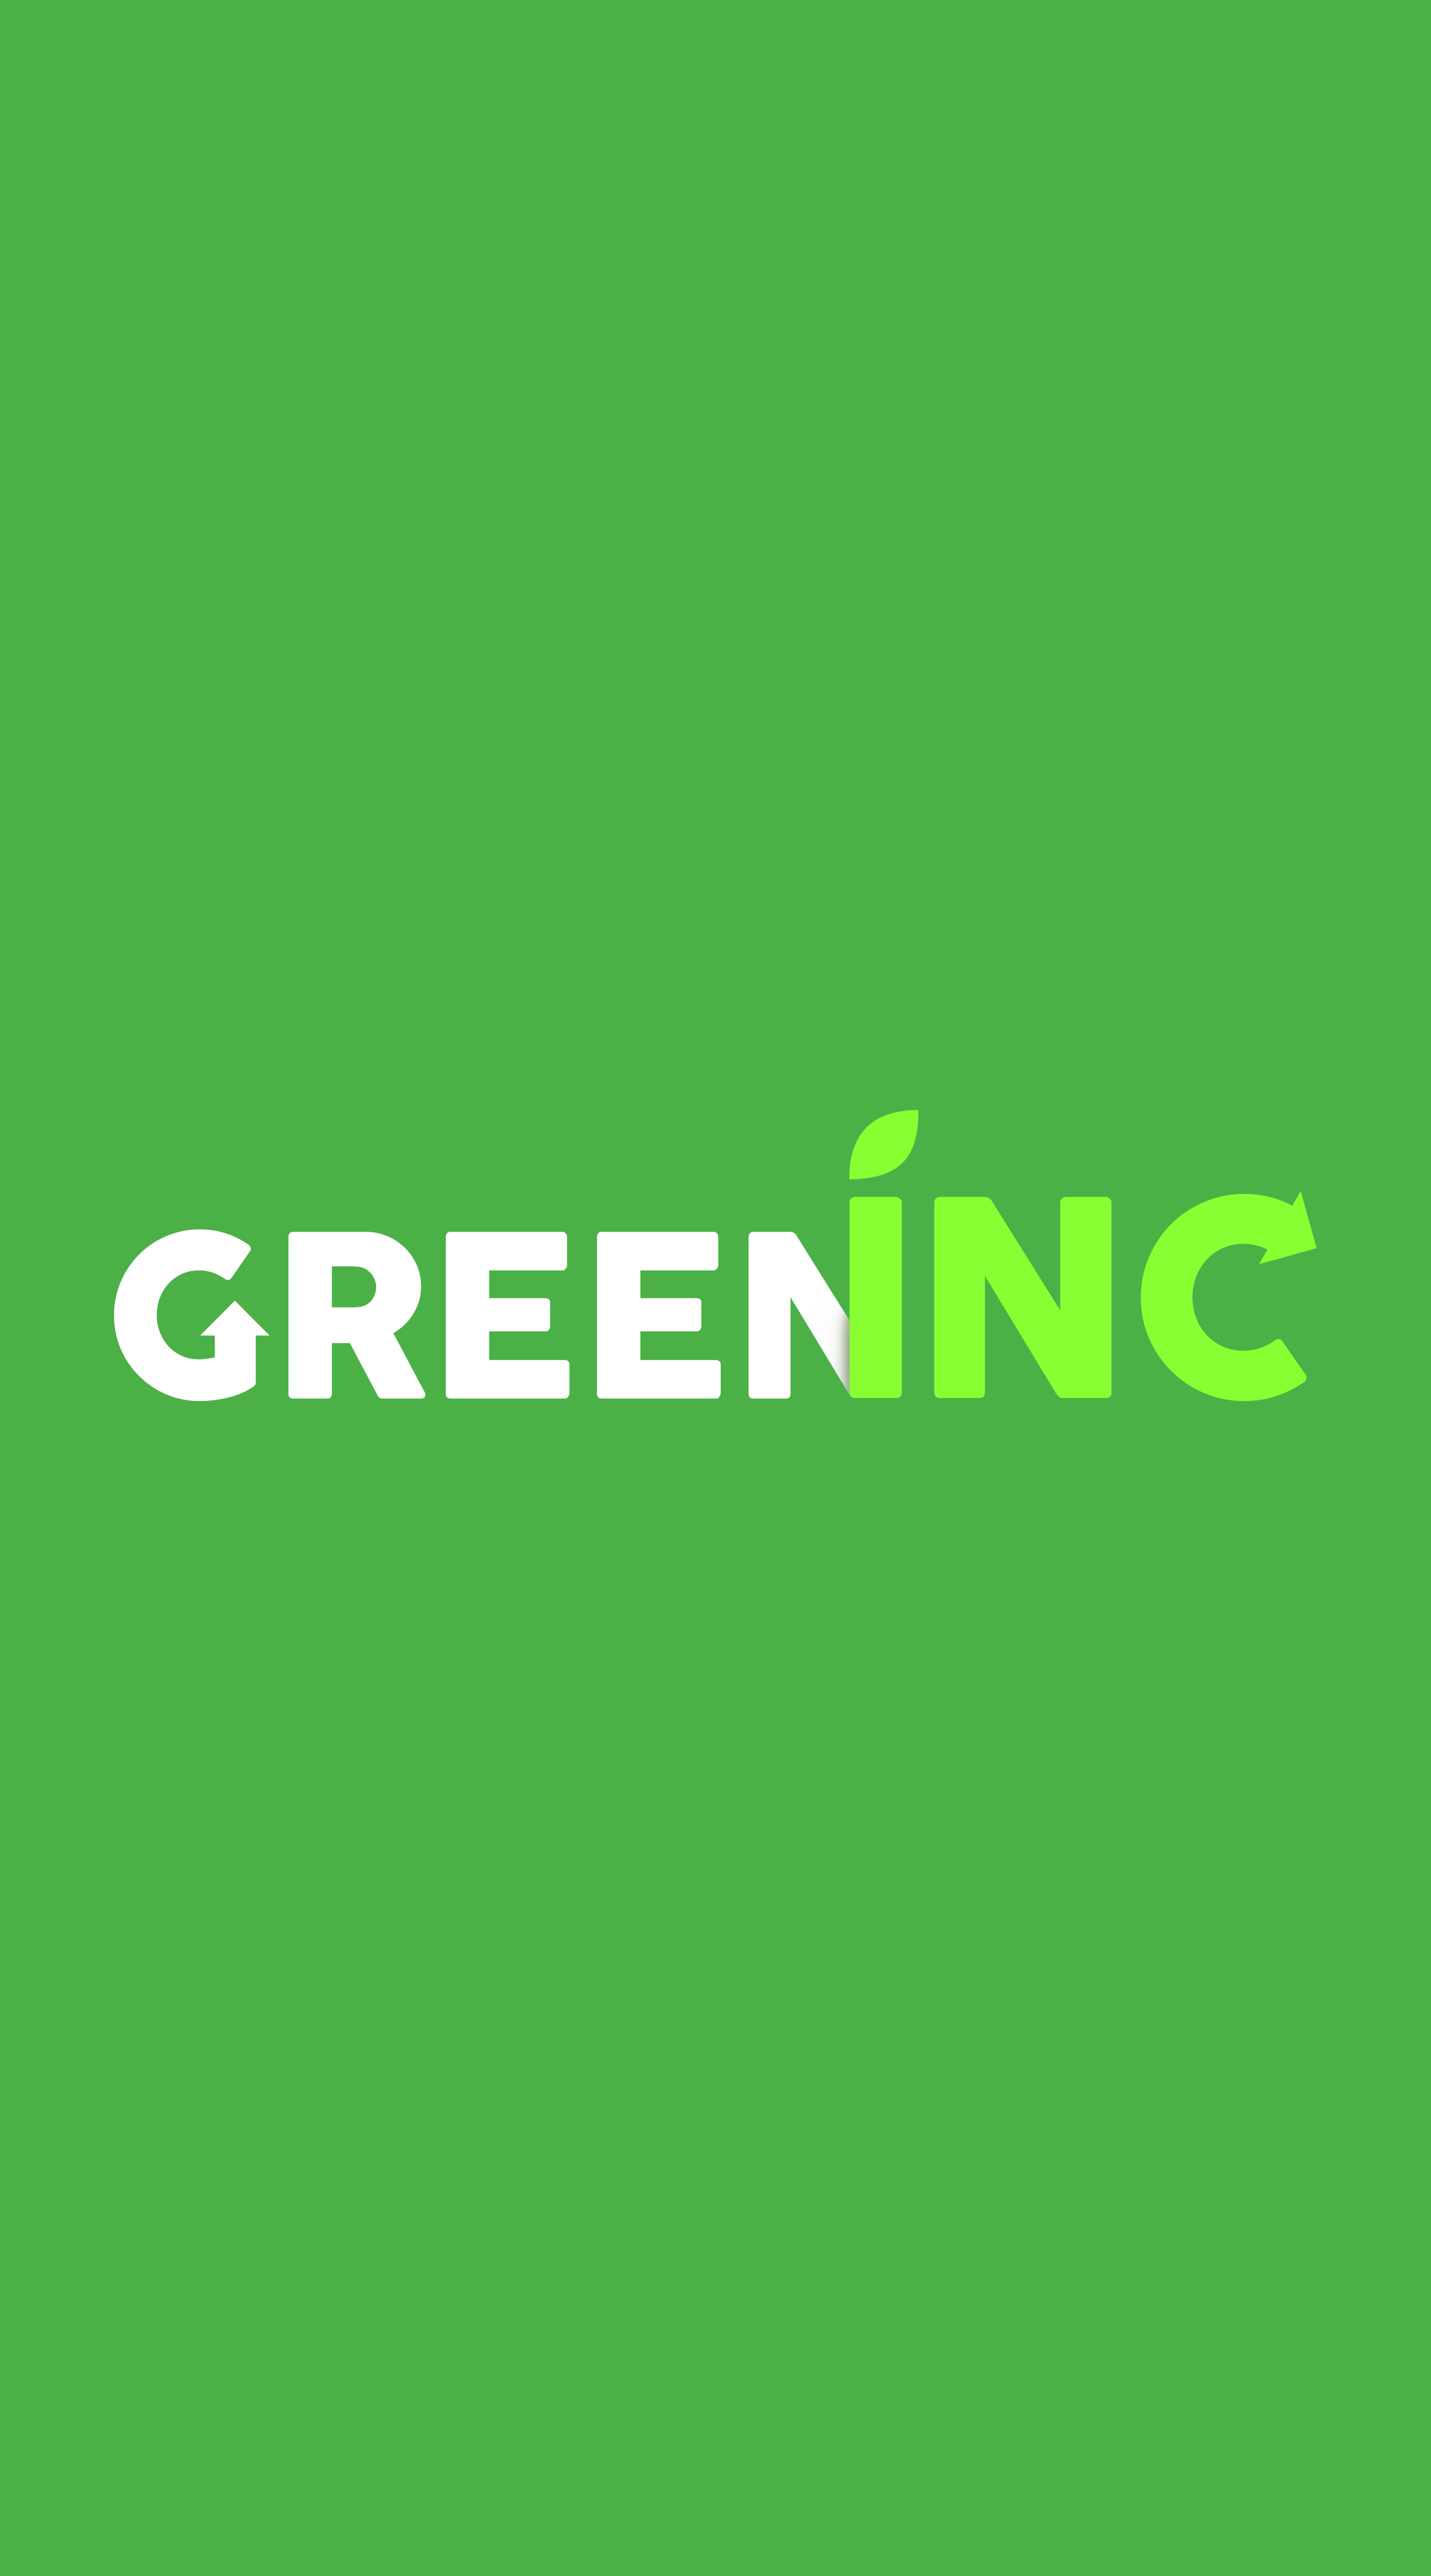 Green Inc Vinyl Banner Vertical.jpg